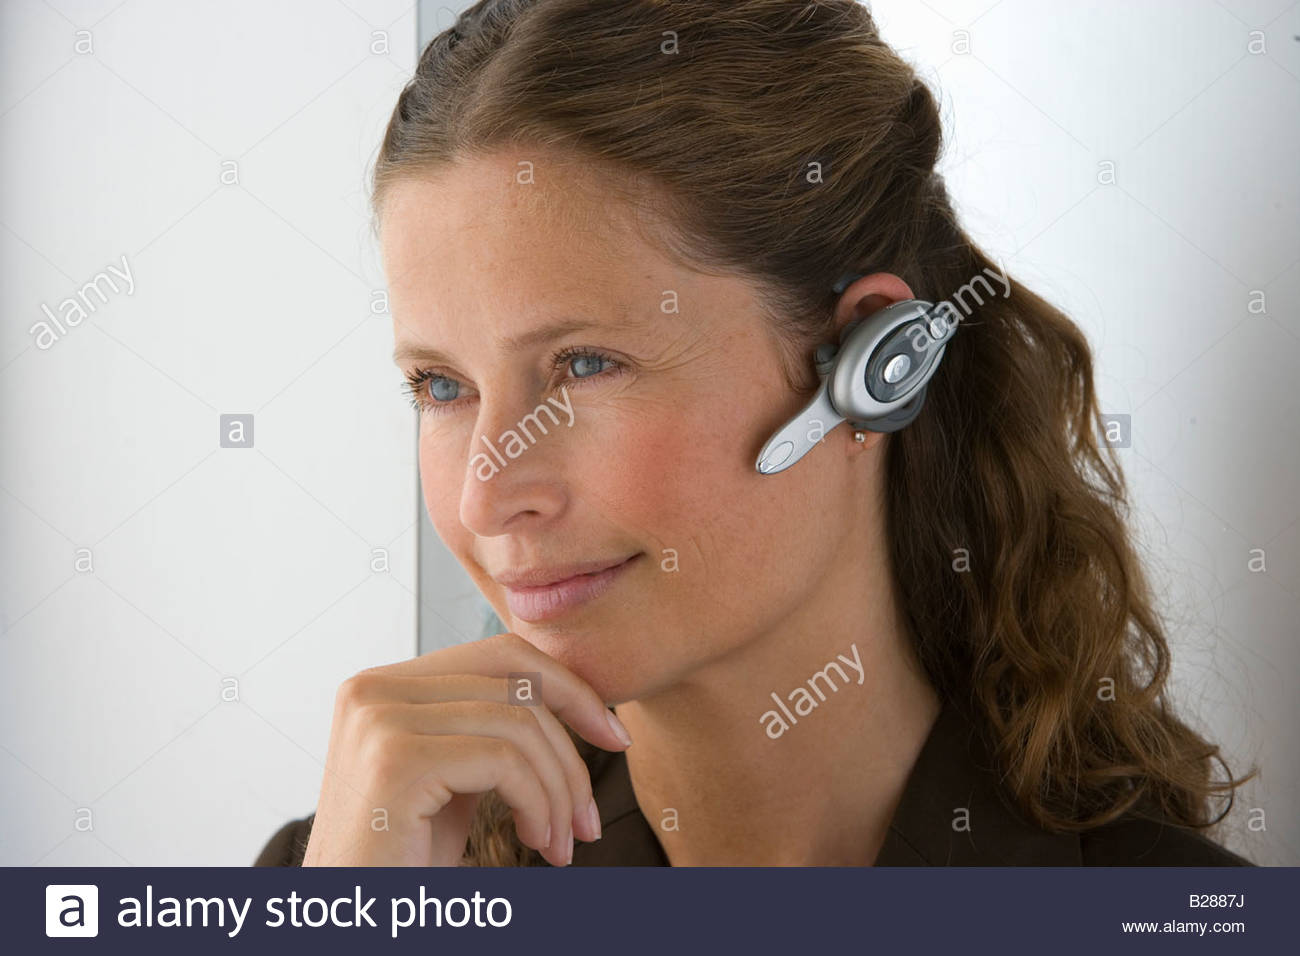 Businesswoman with hands-free cell phone headset Stock Photo